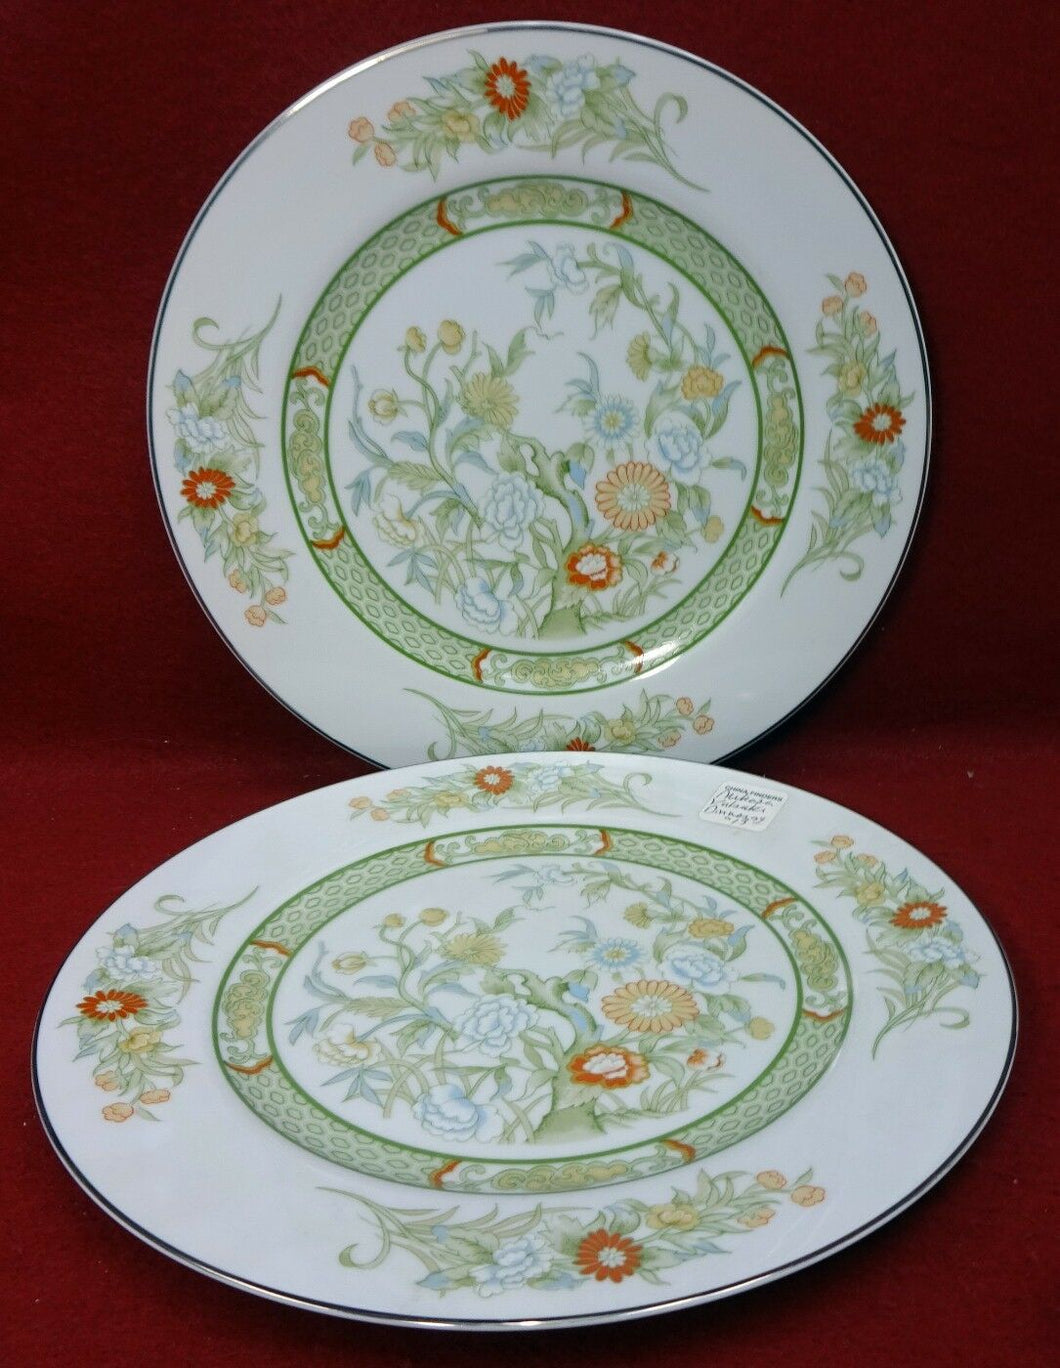 MIKASA china KABUKI L9011 pattern Dinner Plate - Set of Two (2) - 10 5/8